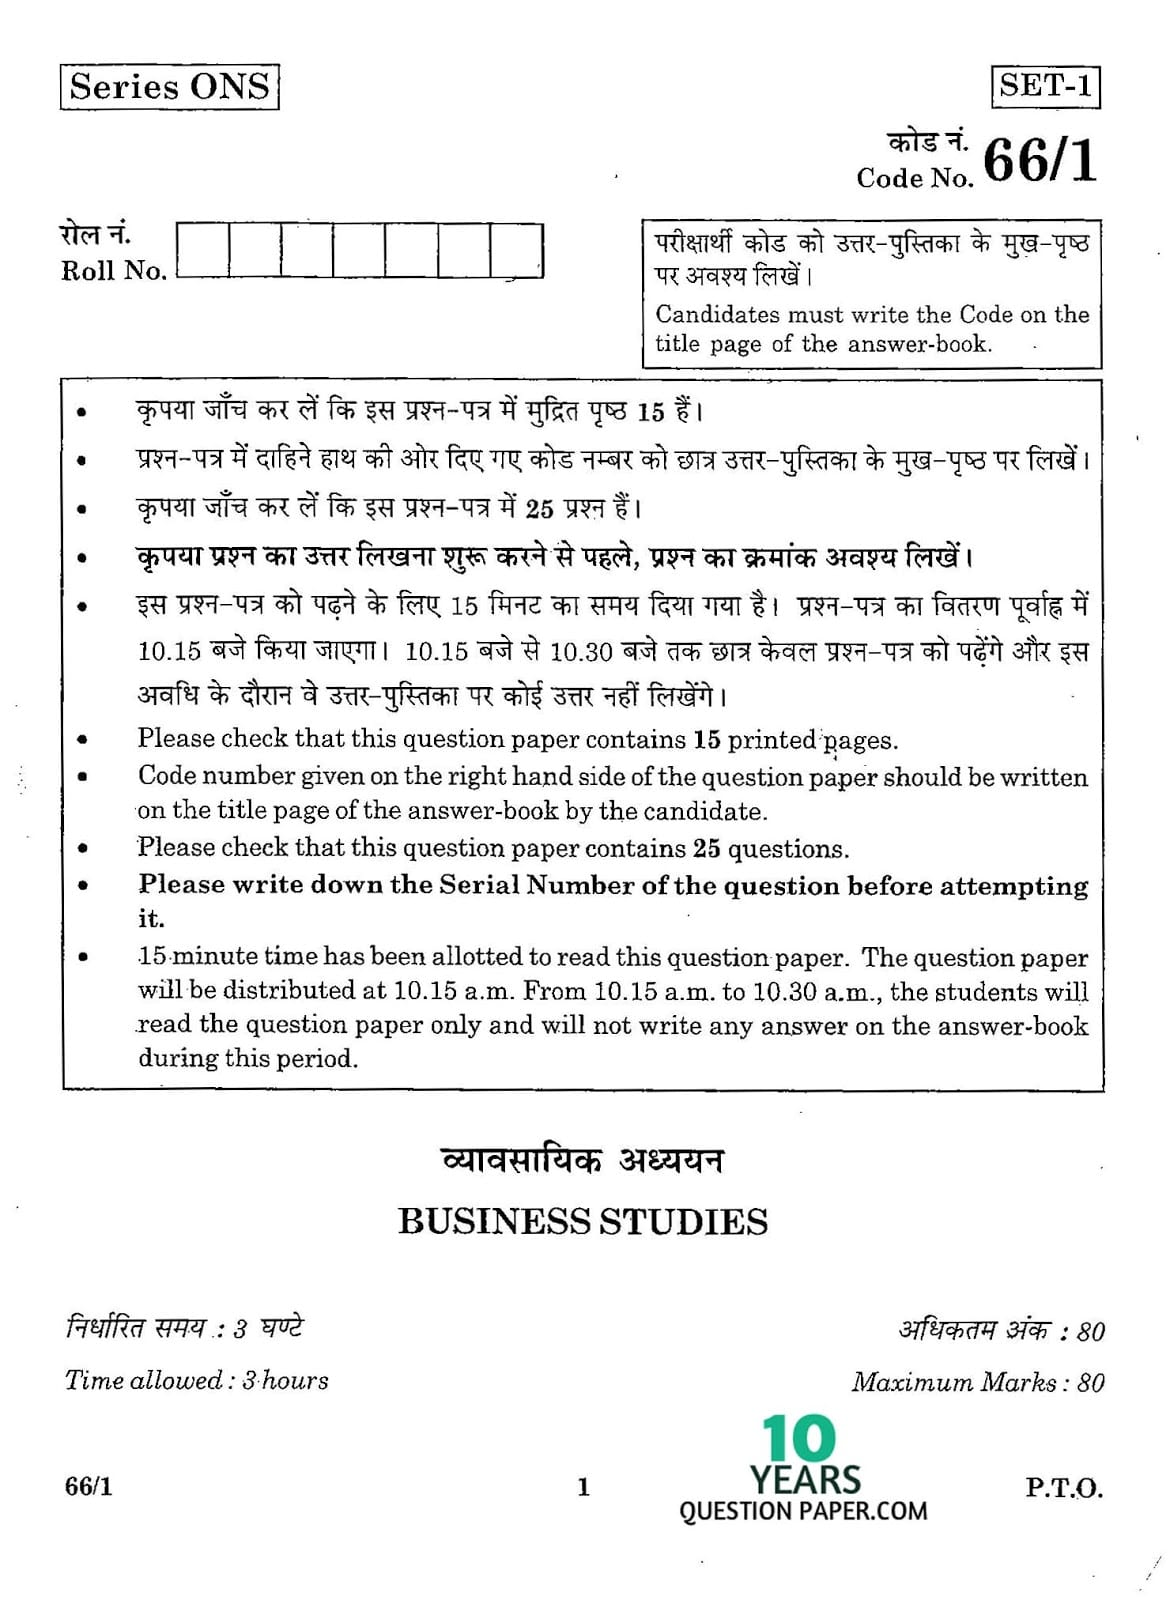 CBSE 2016 Business Studies Question Paper for Class 12